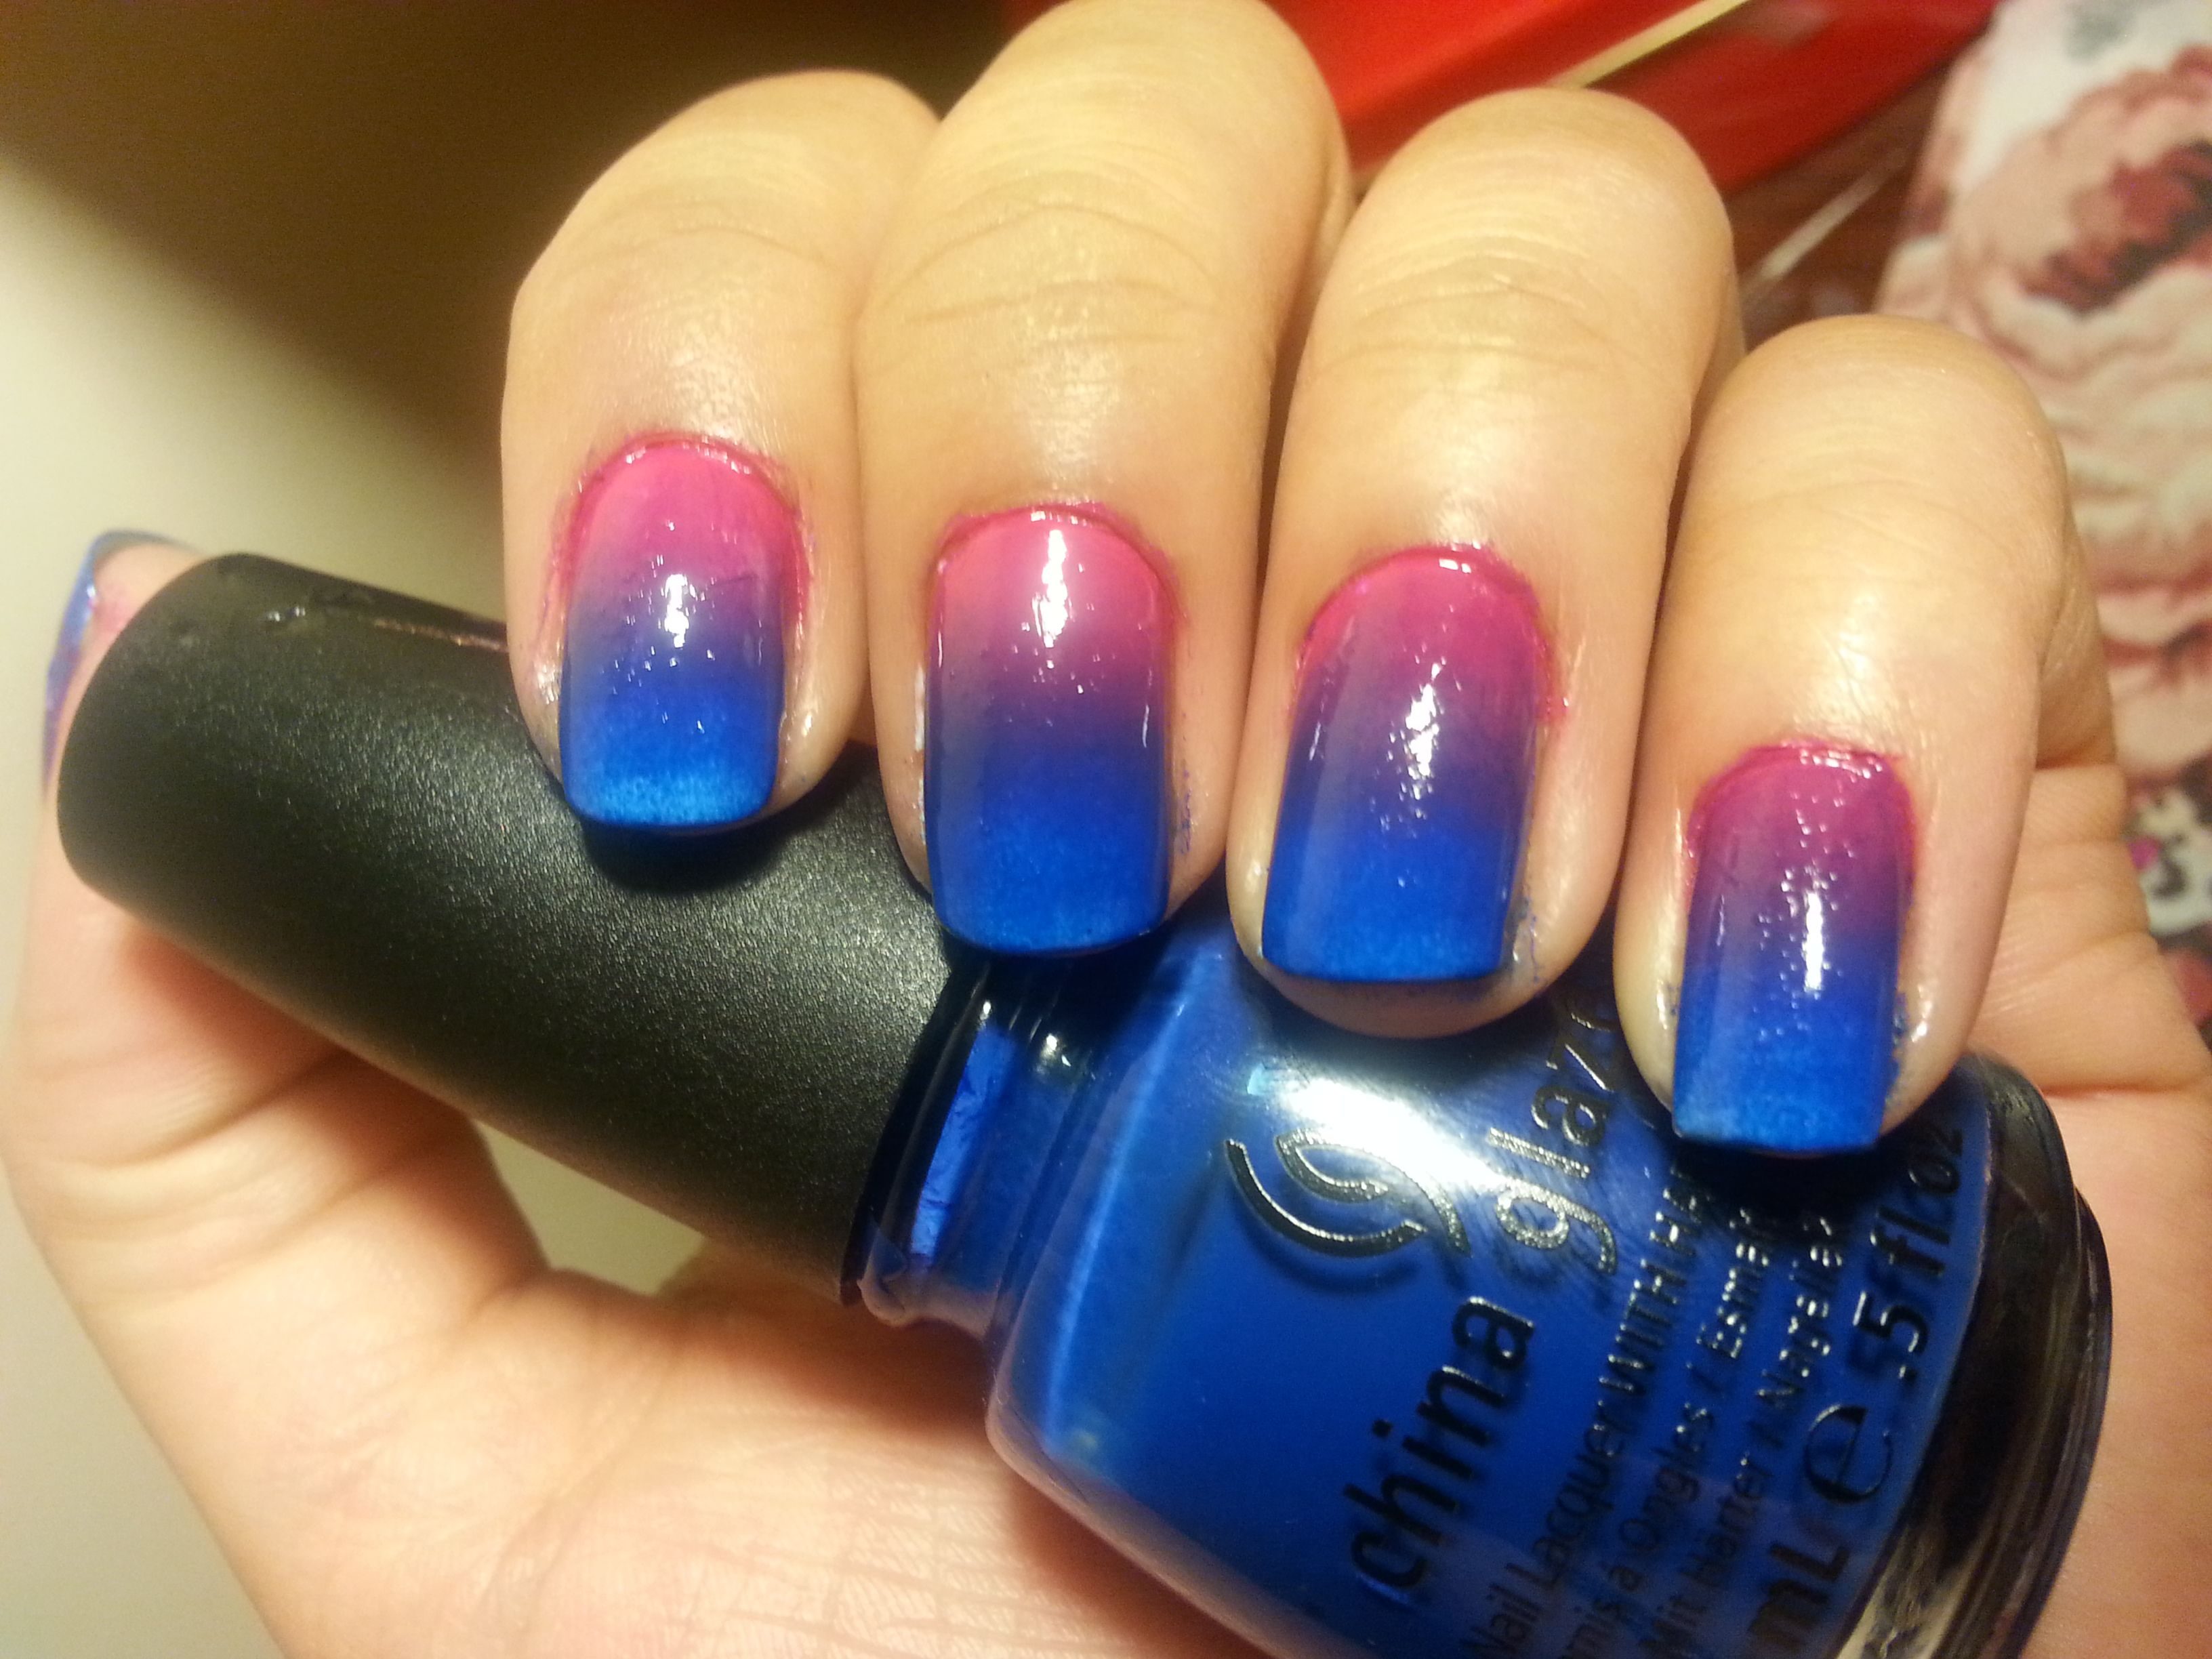 Pink to blue gradient #gradient #ombre #ombrenails #gradientnails #blue #pink #nails #nailart #ilovenailart #girly #cute #summer